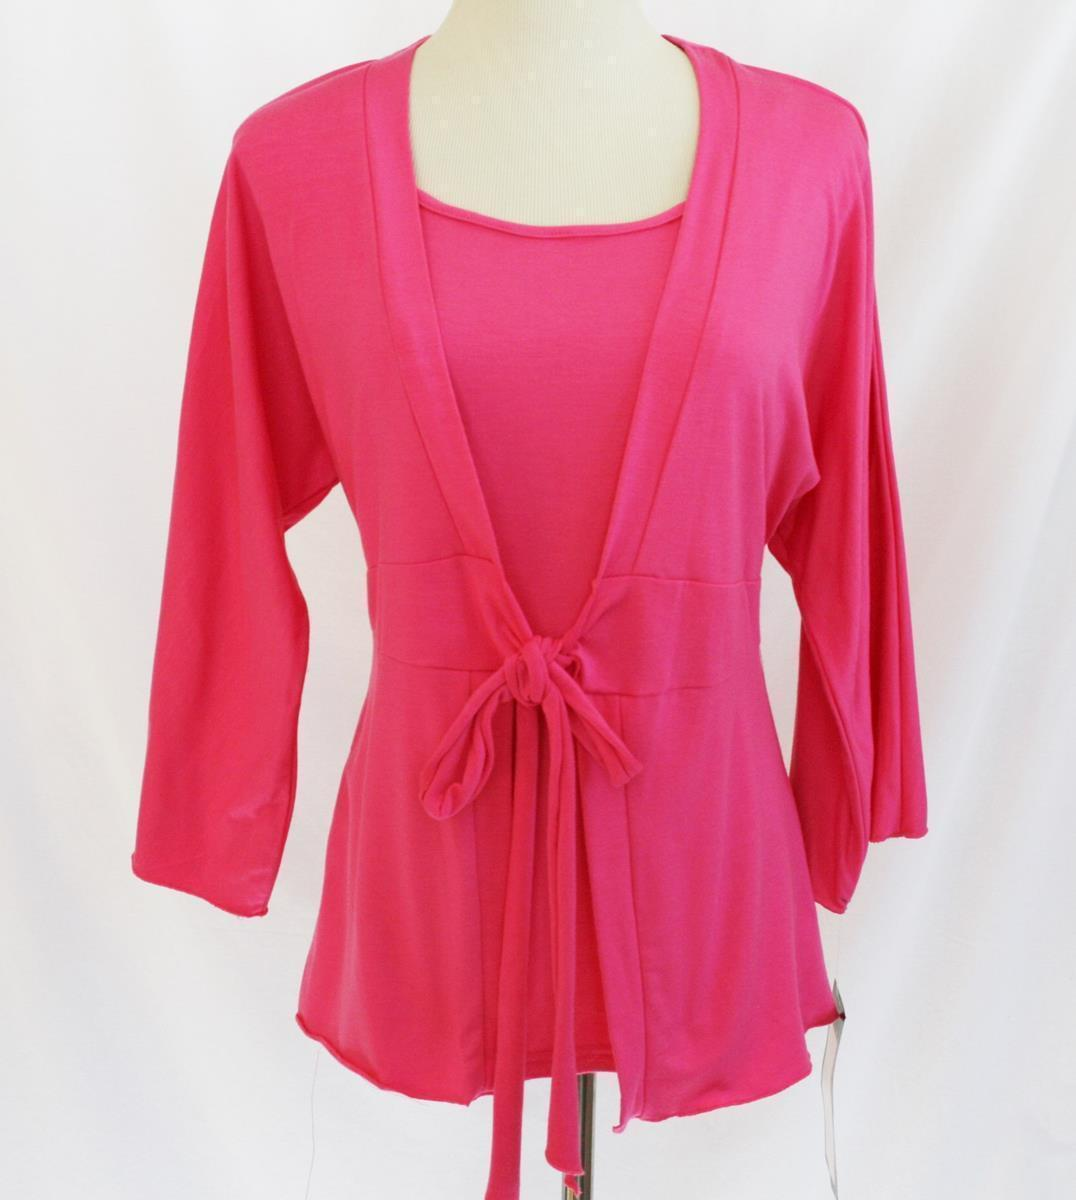 Alexis & Avery Hot Pink Tie Front Layered Look Top Medium     #1877